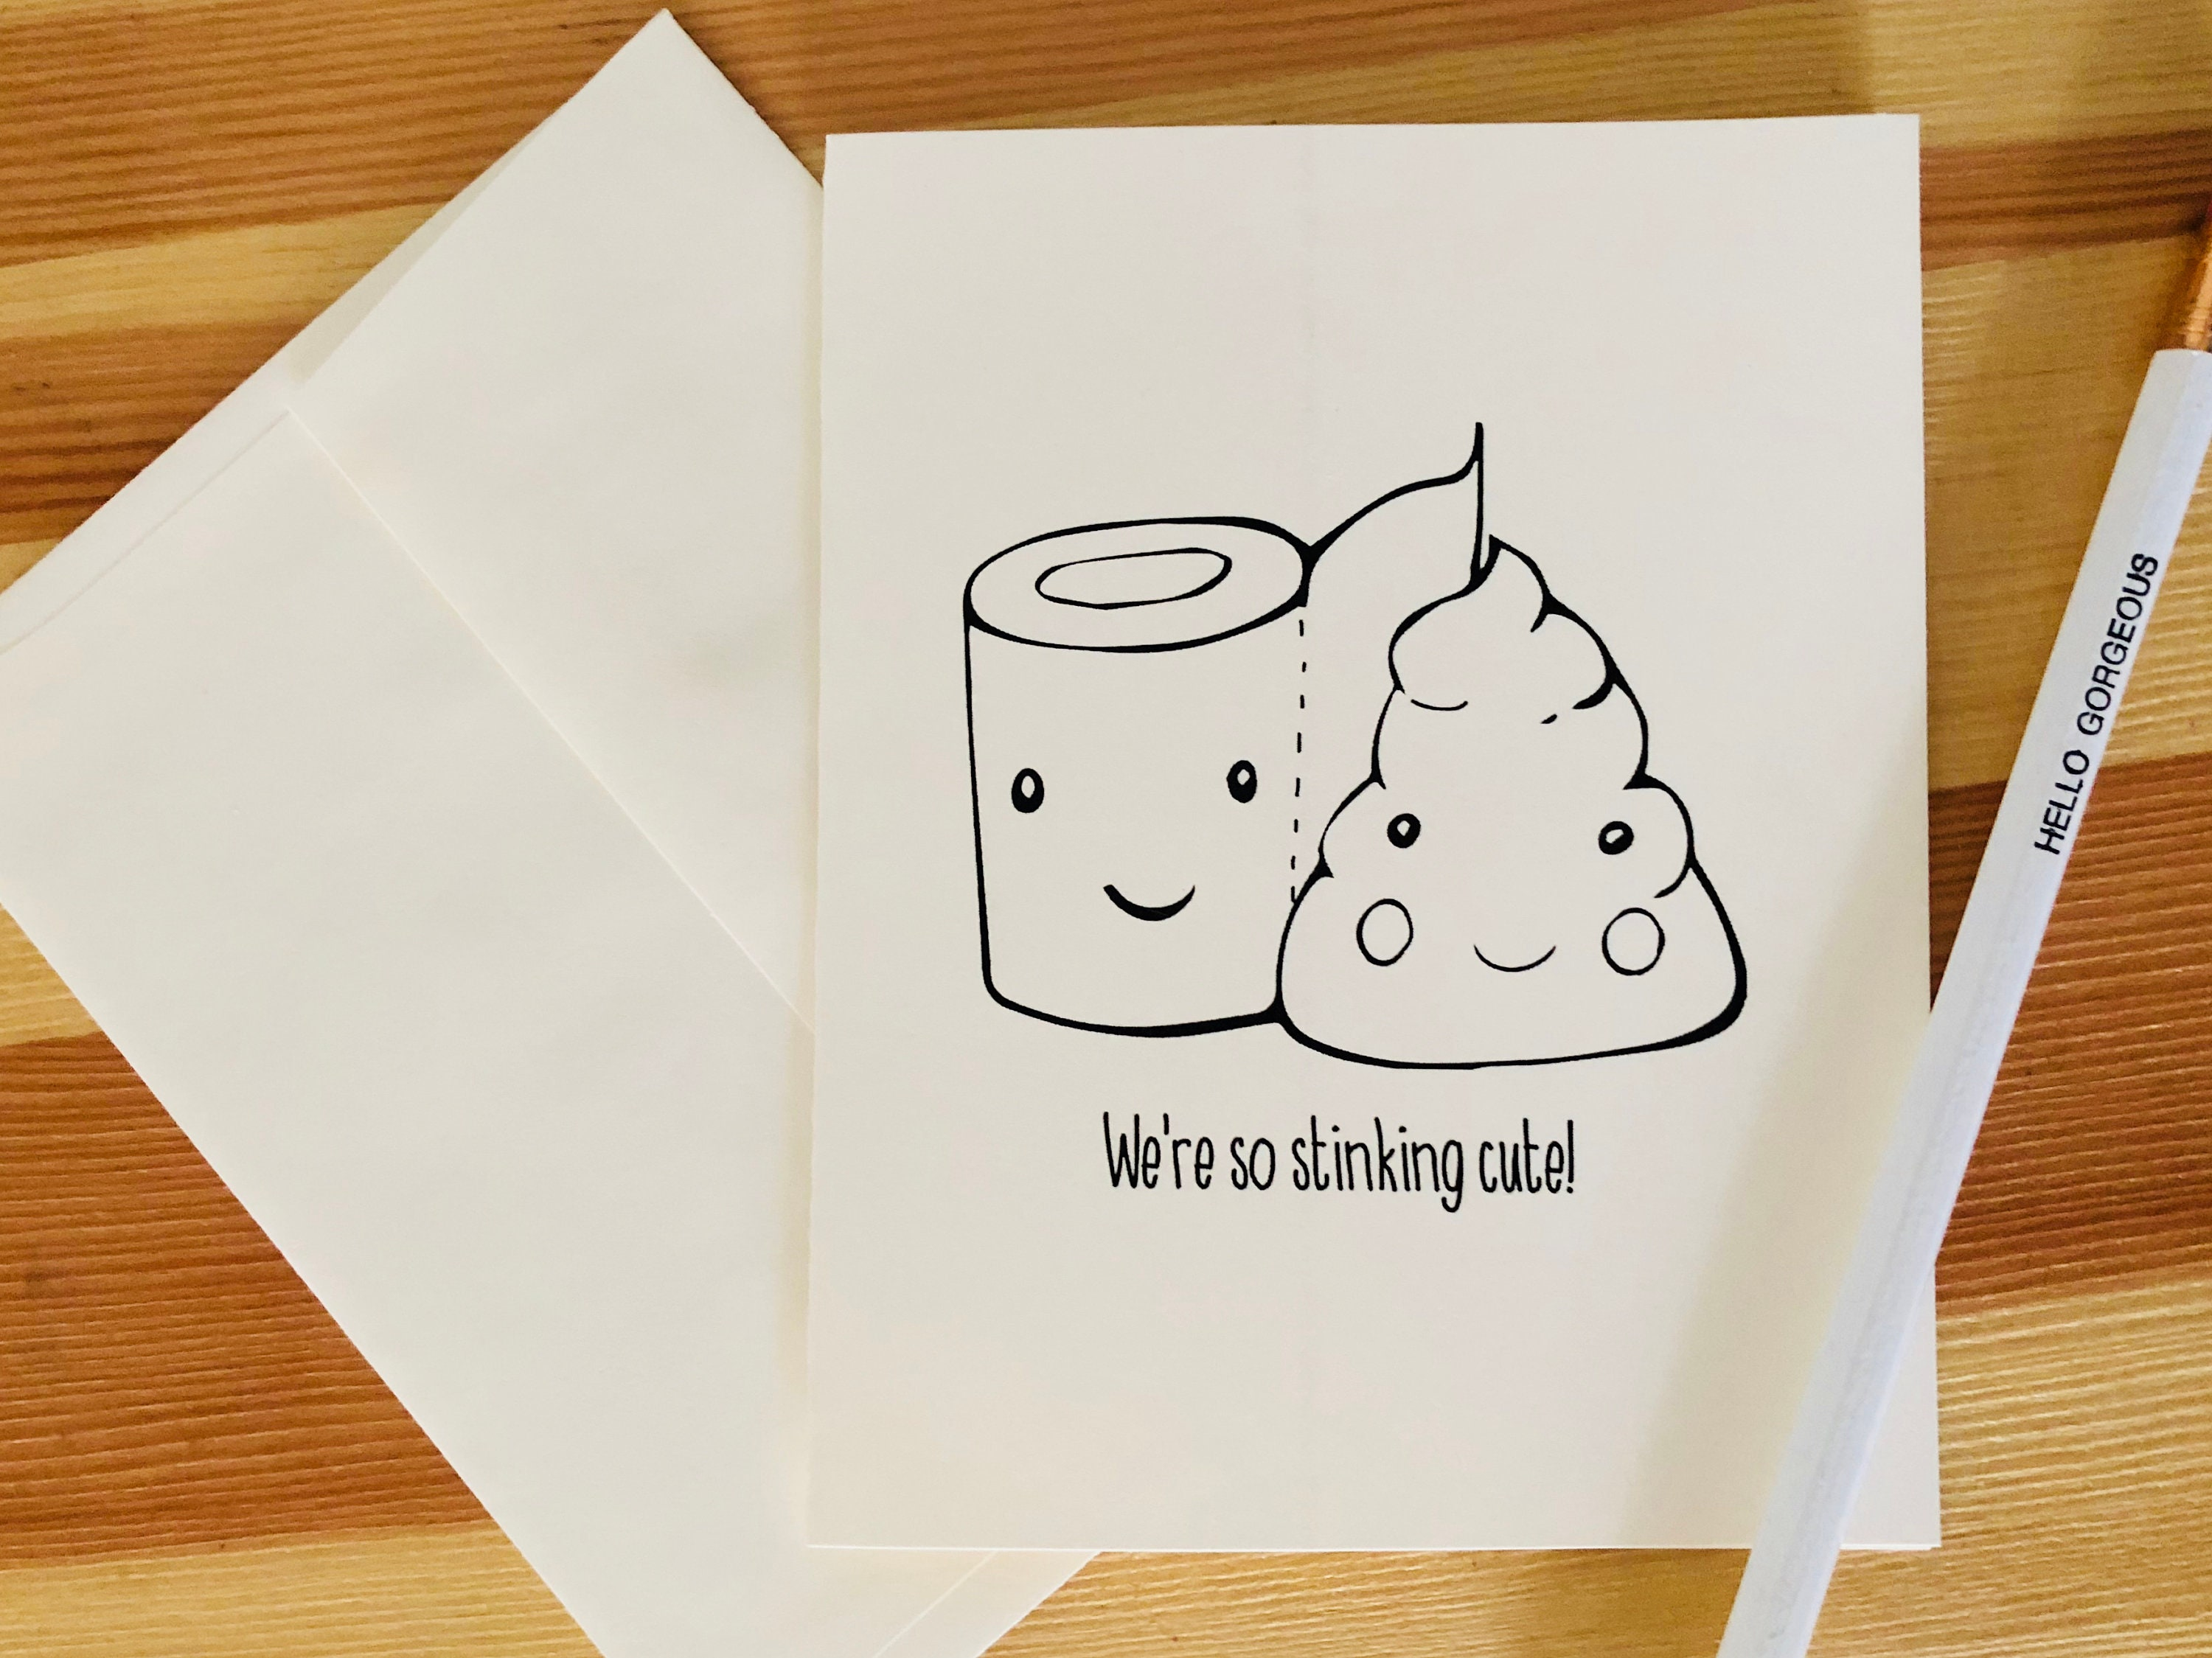 We are so stinking cute poop Card | Funny Card | poop Greeting Card | Funny  poo Greetings | toilet Card | pun | I Love you Card for Him